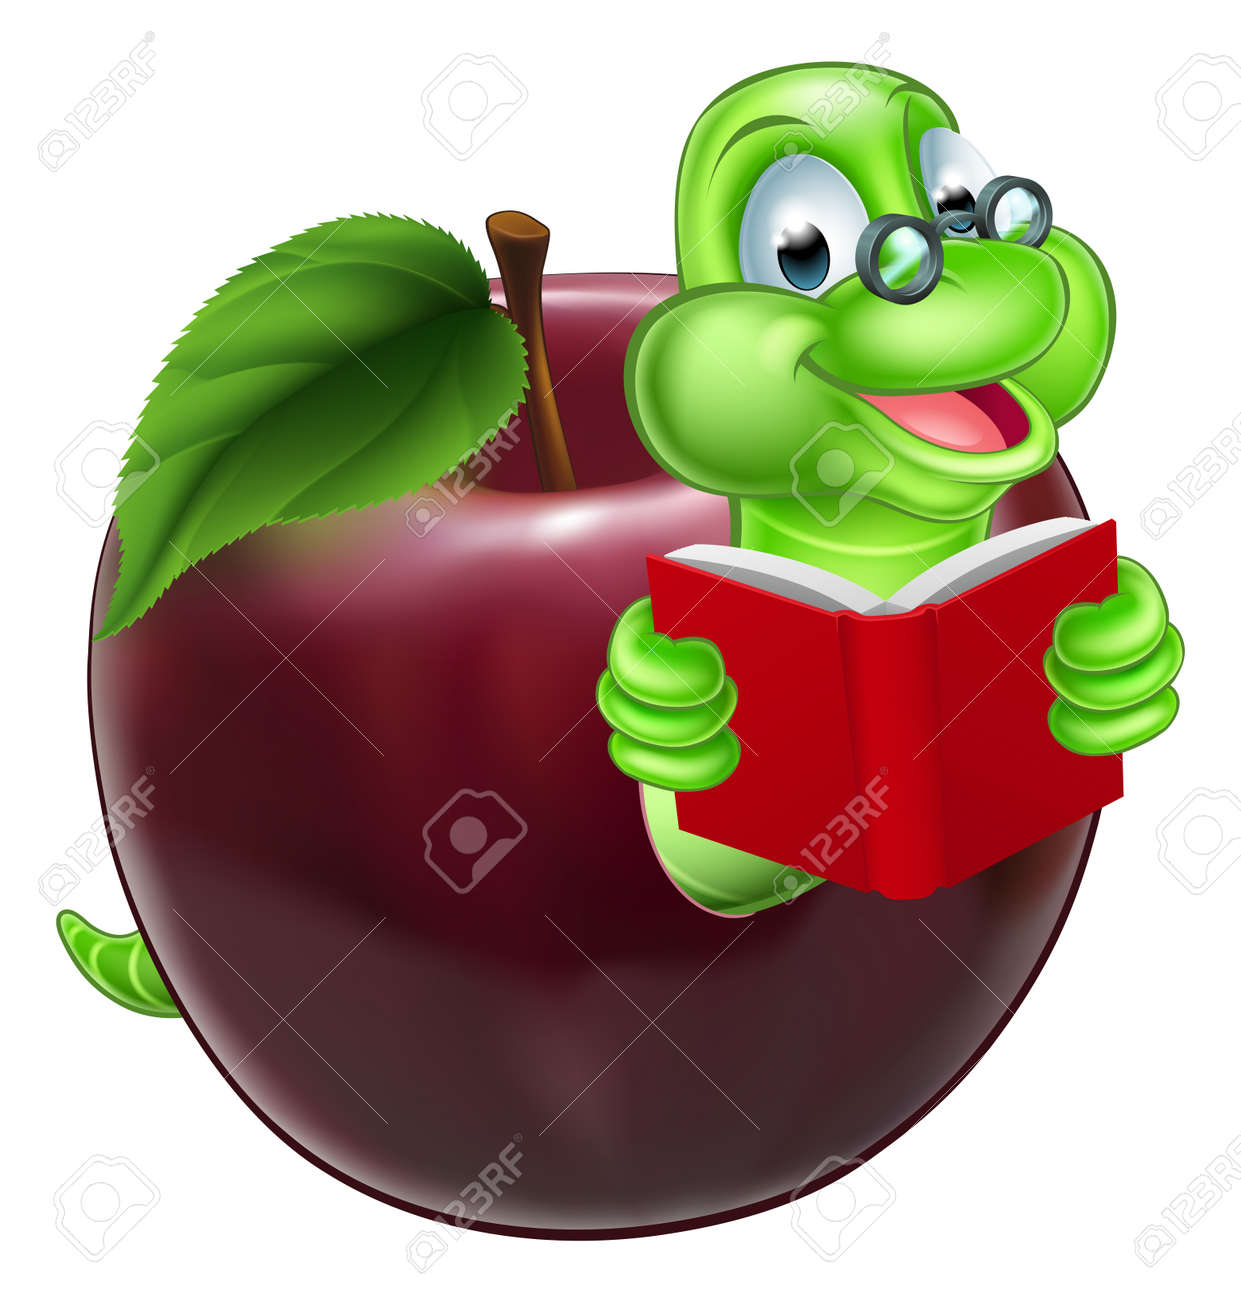 hight resolution of a happy cute cartoon caterpillar bookworm worm or caterpillar reading a book and coming out of